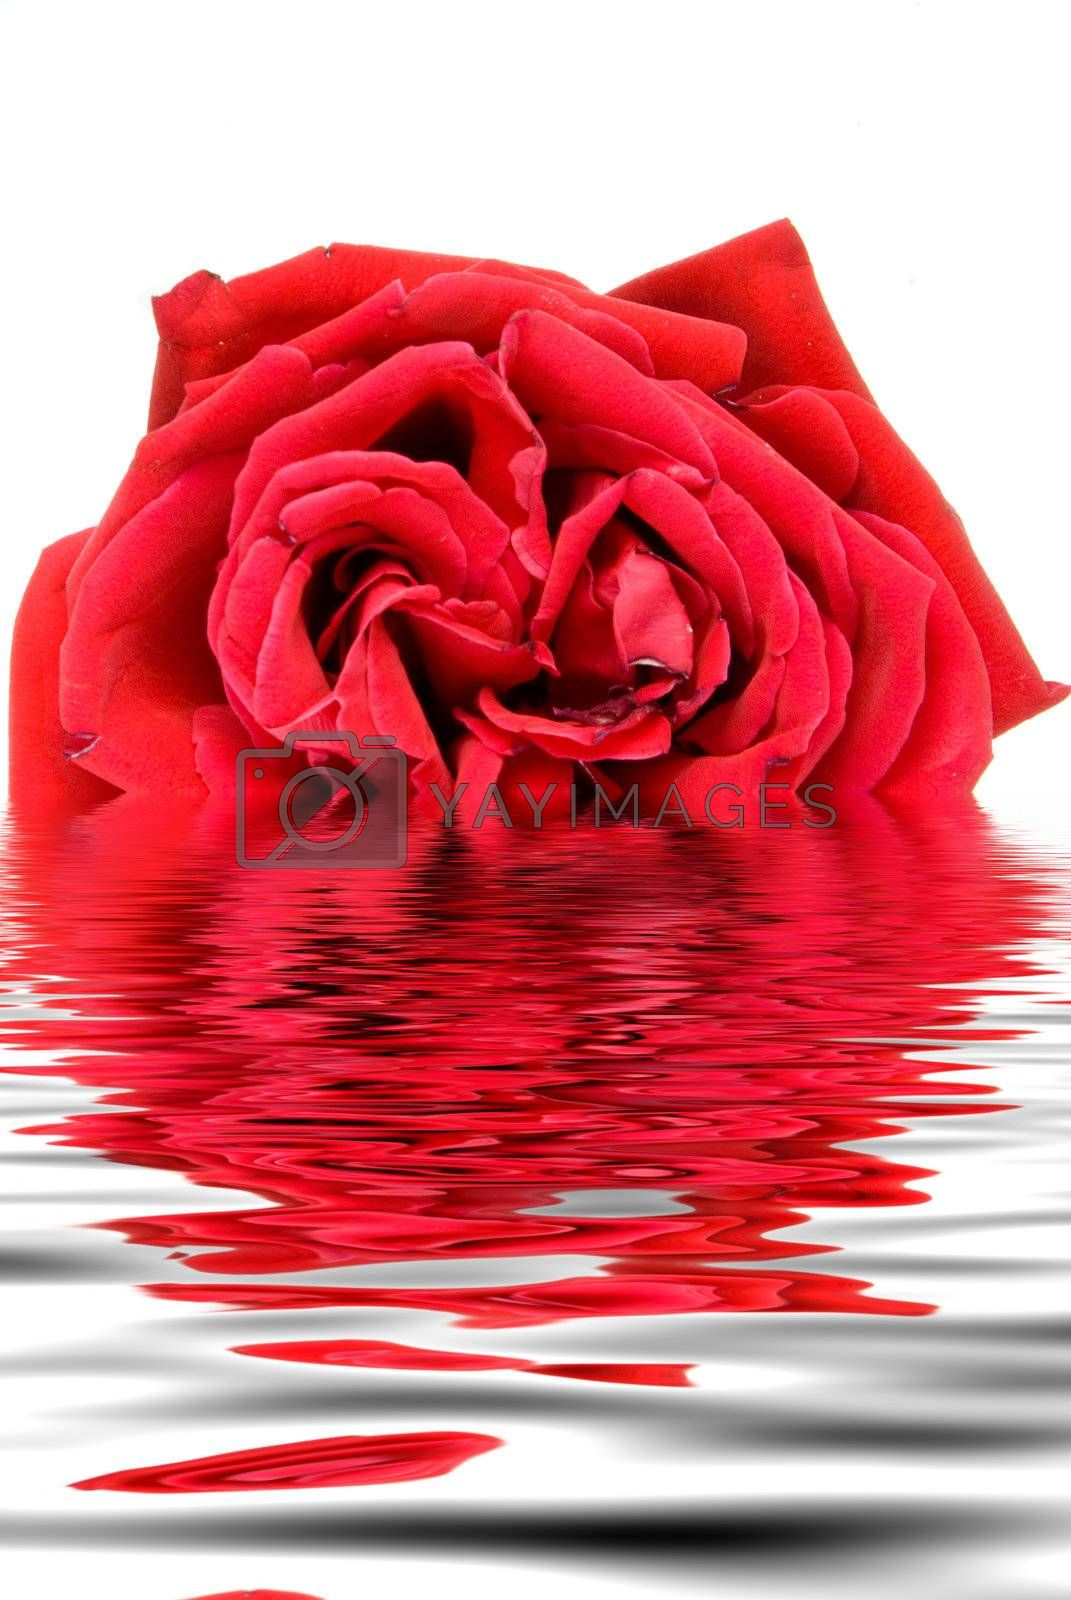 A beautiful red rose ready for a loved one.